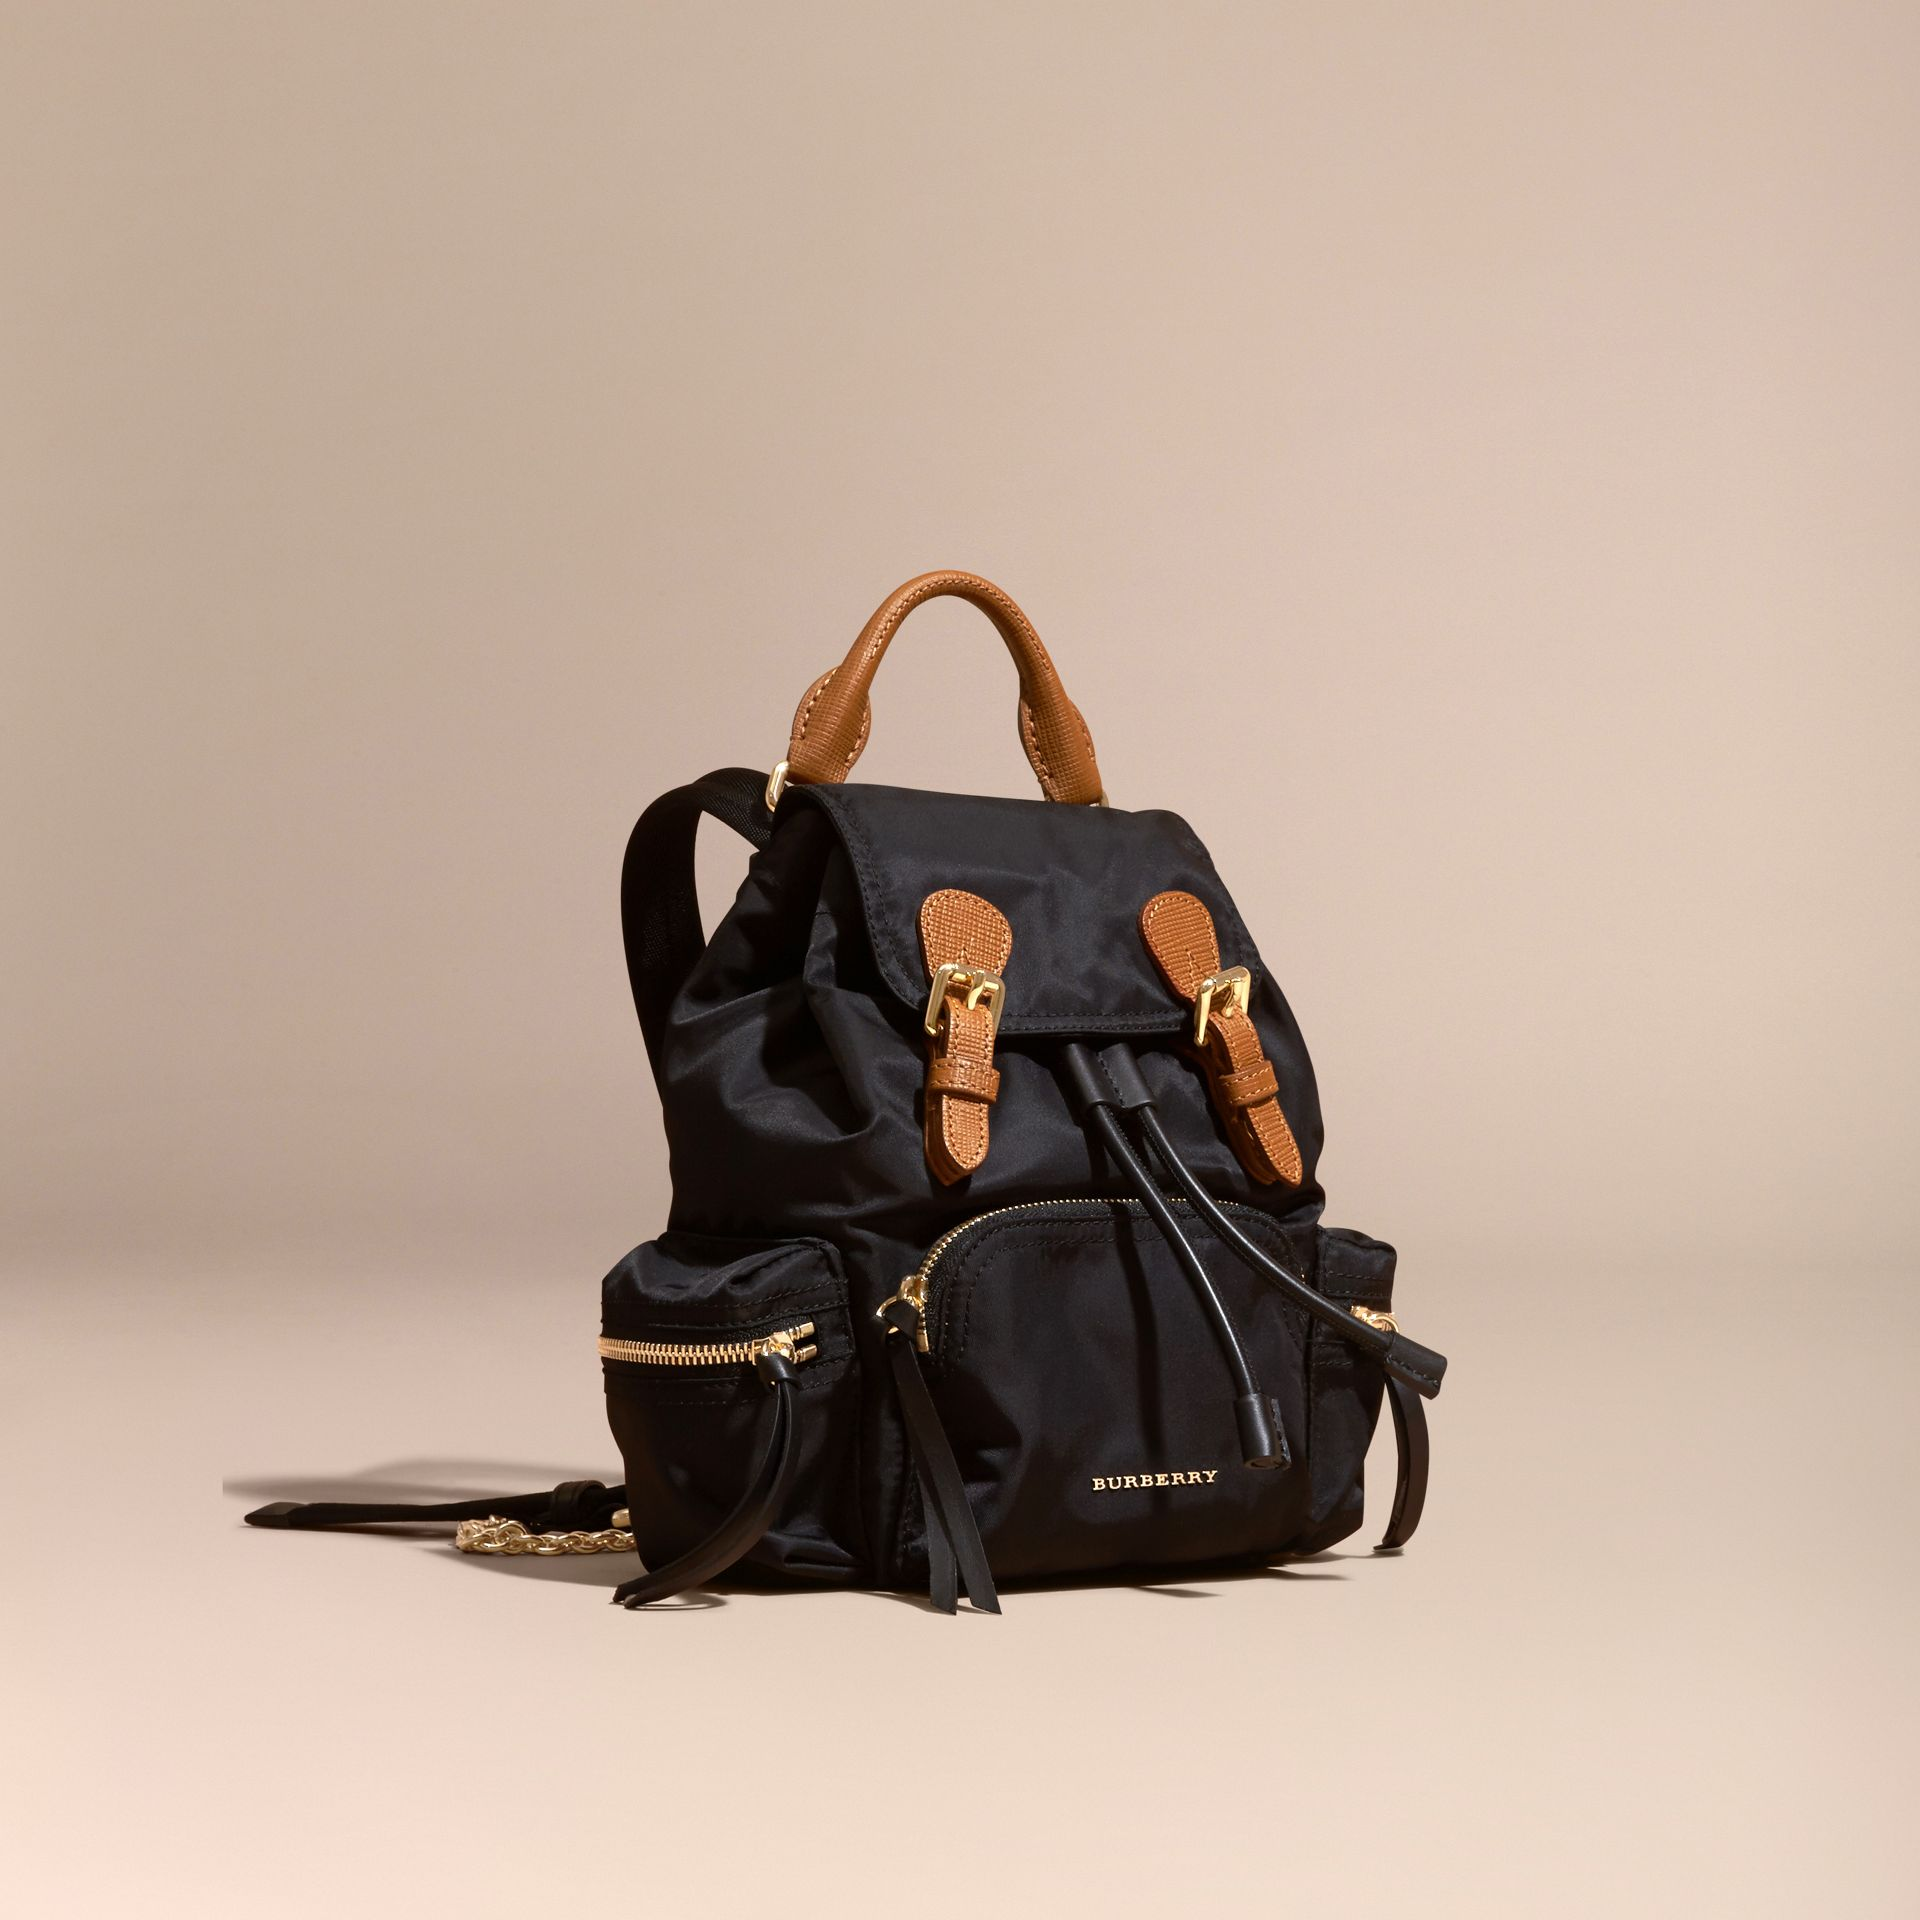 Noir Petit sac The Rucksack en nylon technique et cuir Noir - photo de la galerie 1